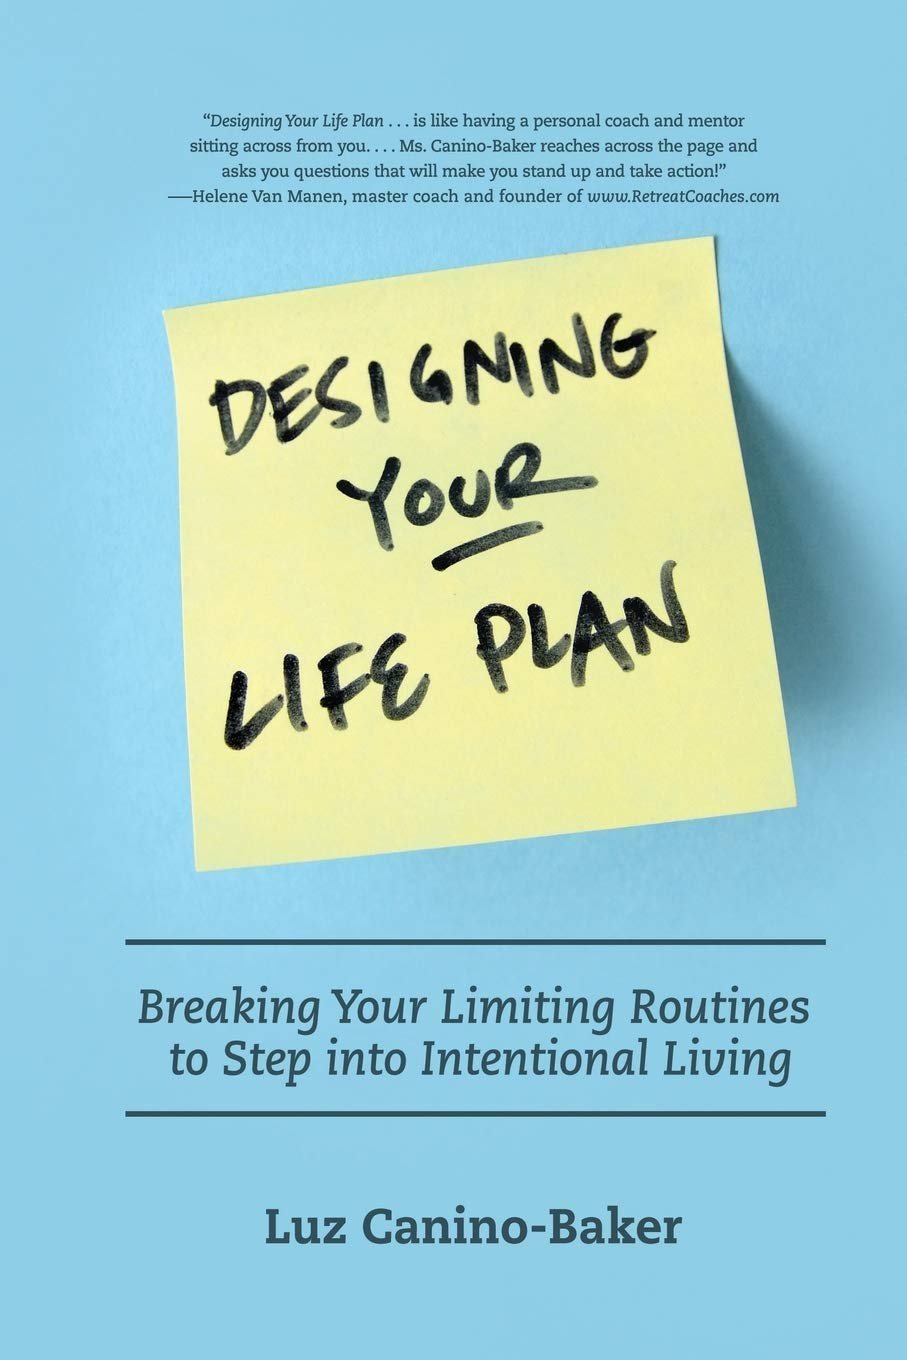 Image OfDesigning Your Life Plan: Breaking Your Limiting Routines To Step Into Intentional Living